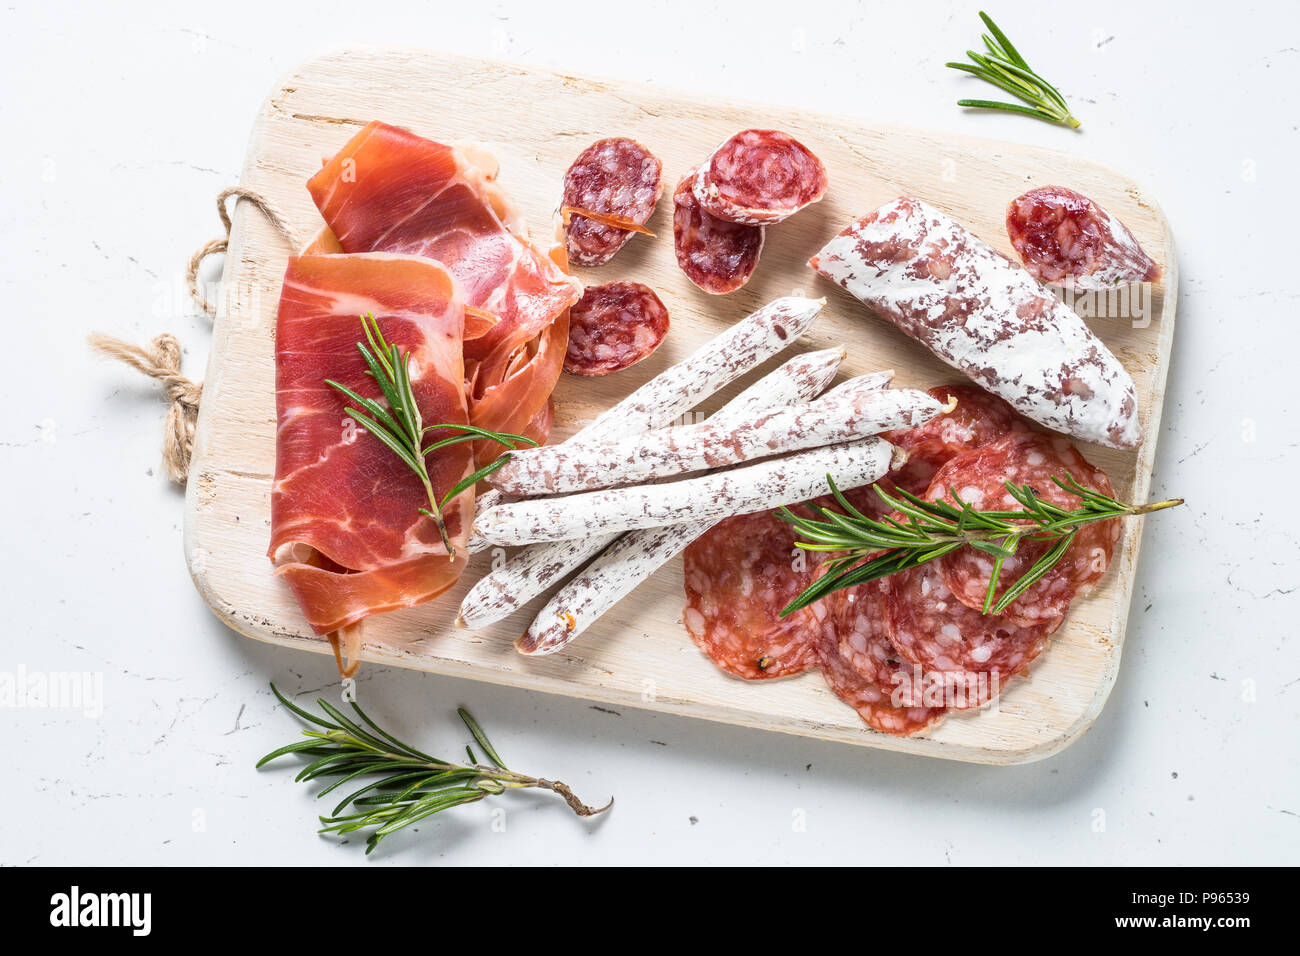 Antipasto. Traditional italian antipasto, sliced meat, appetizer on wooden cutting board on white table, top view. - Stock Image